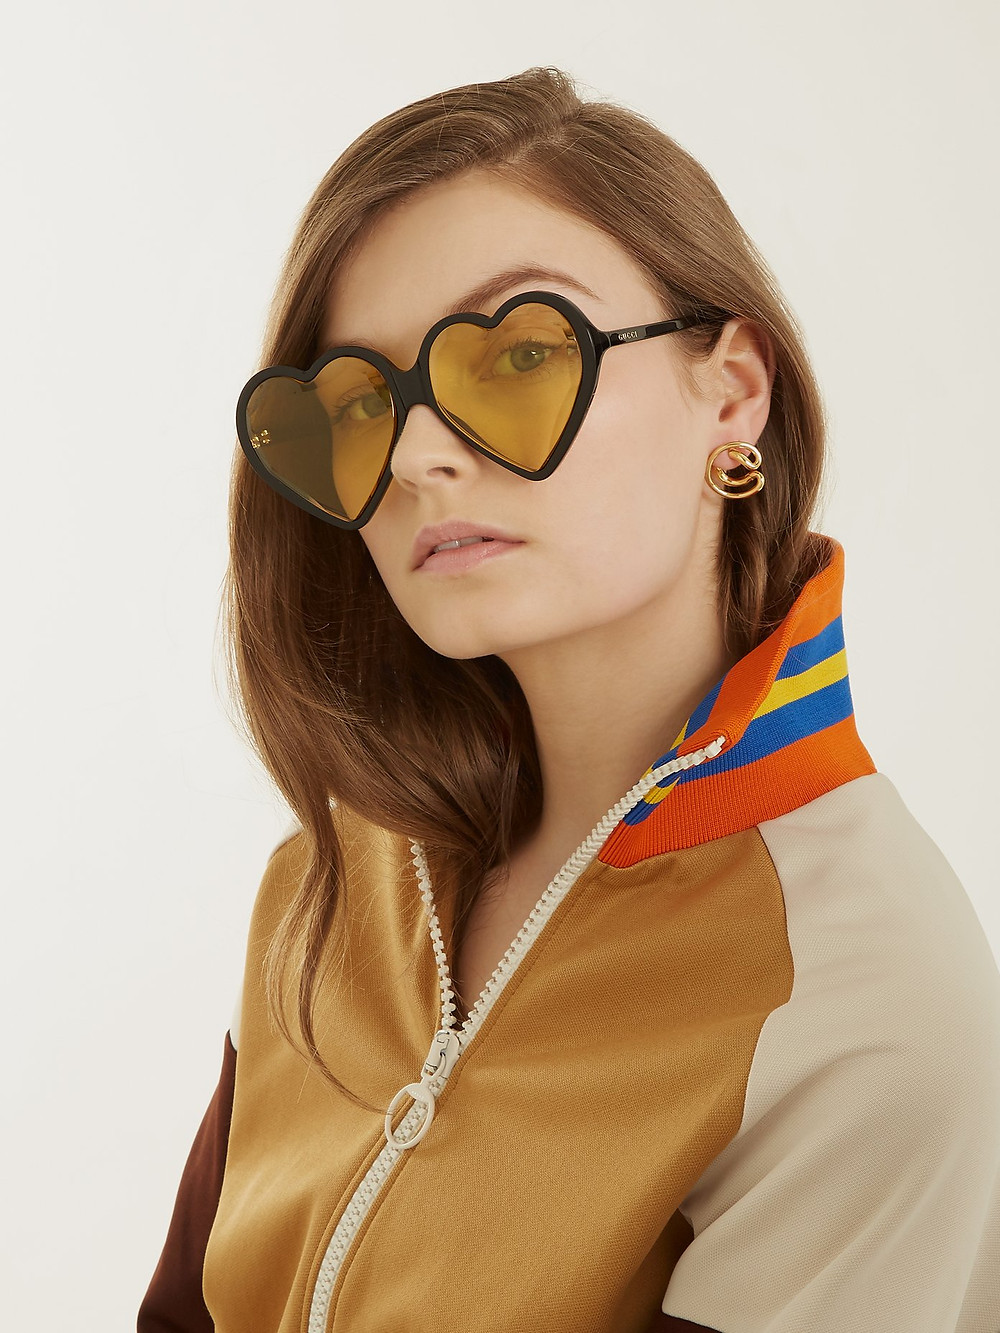 Gucci Heart-shaped frame tinted sunglasses $375